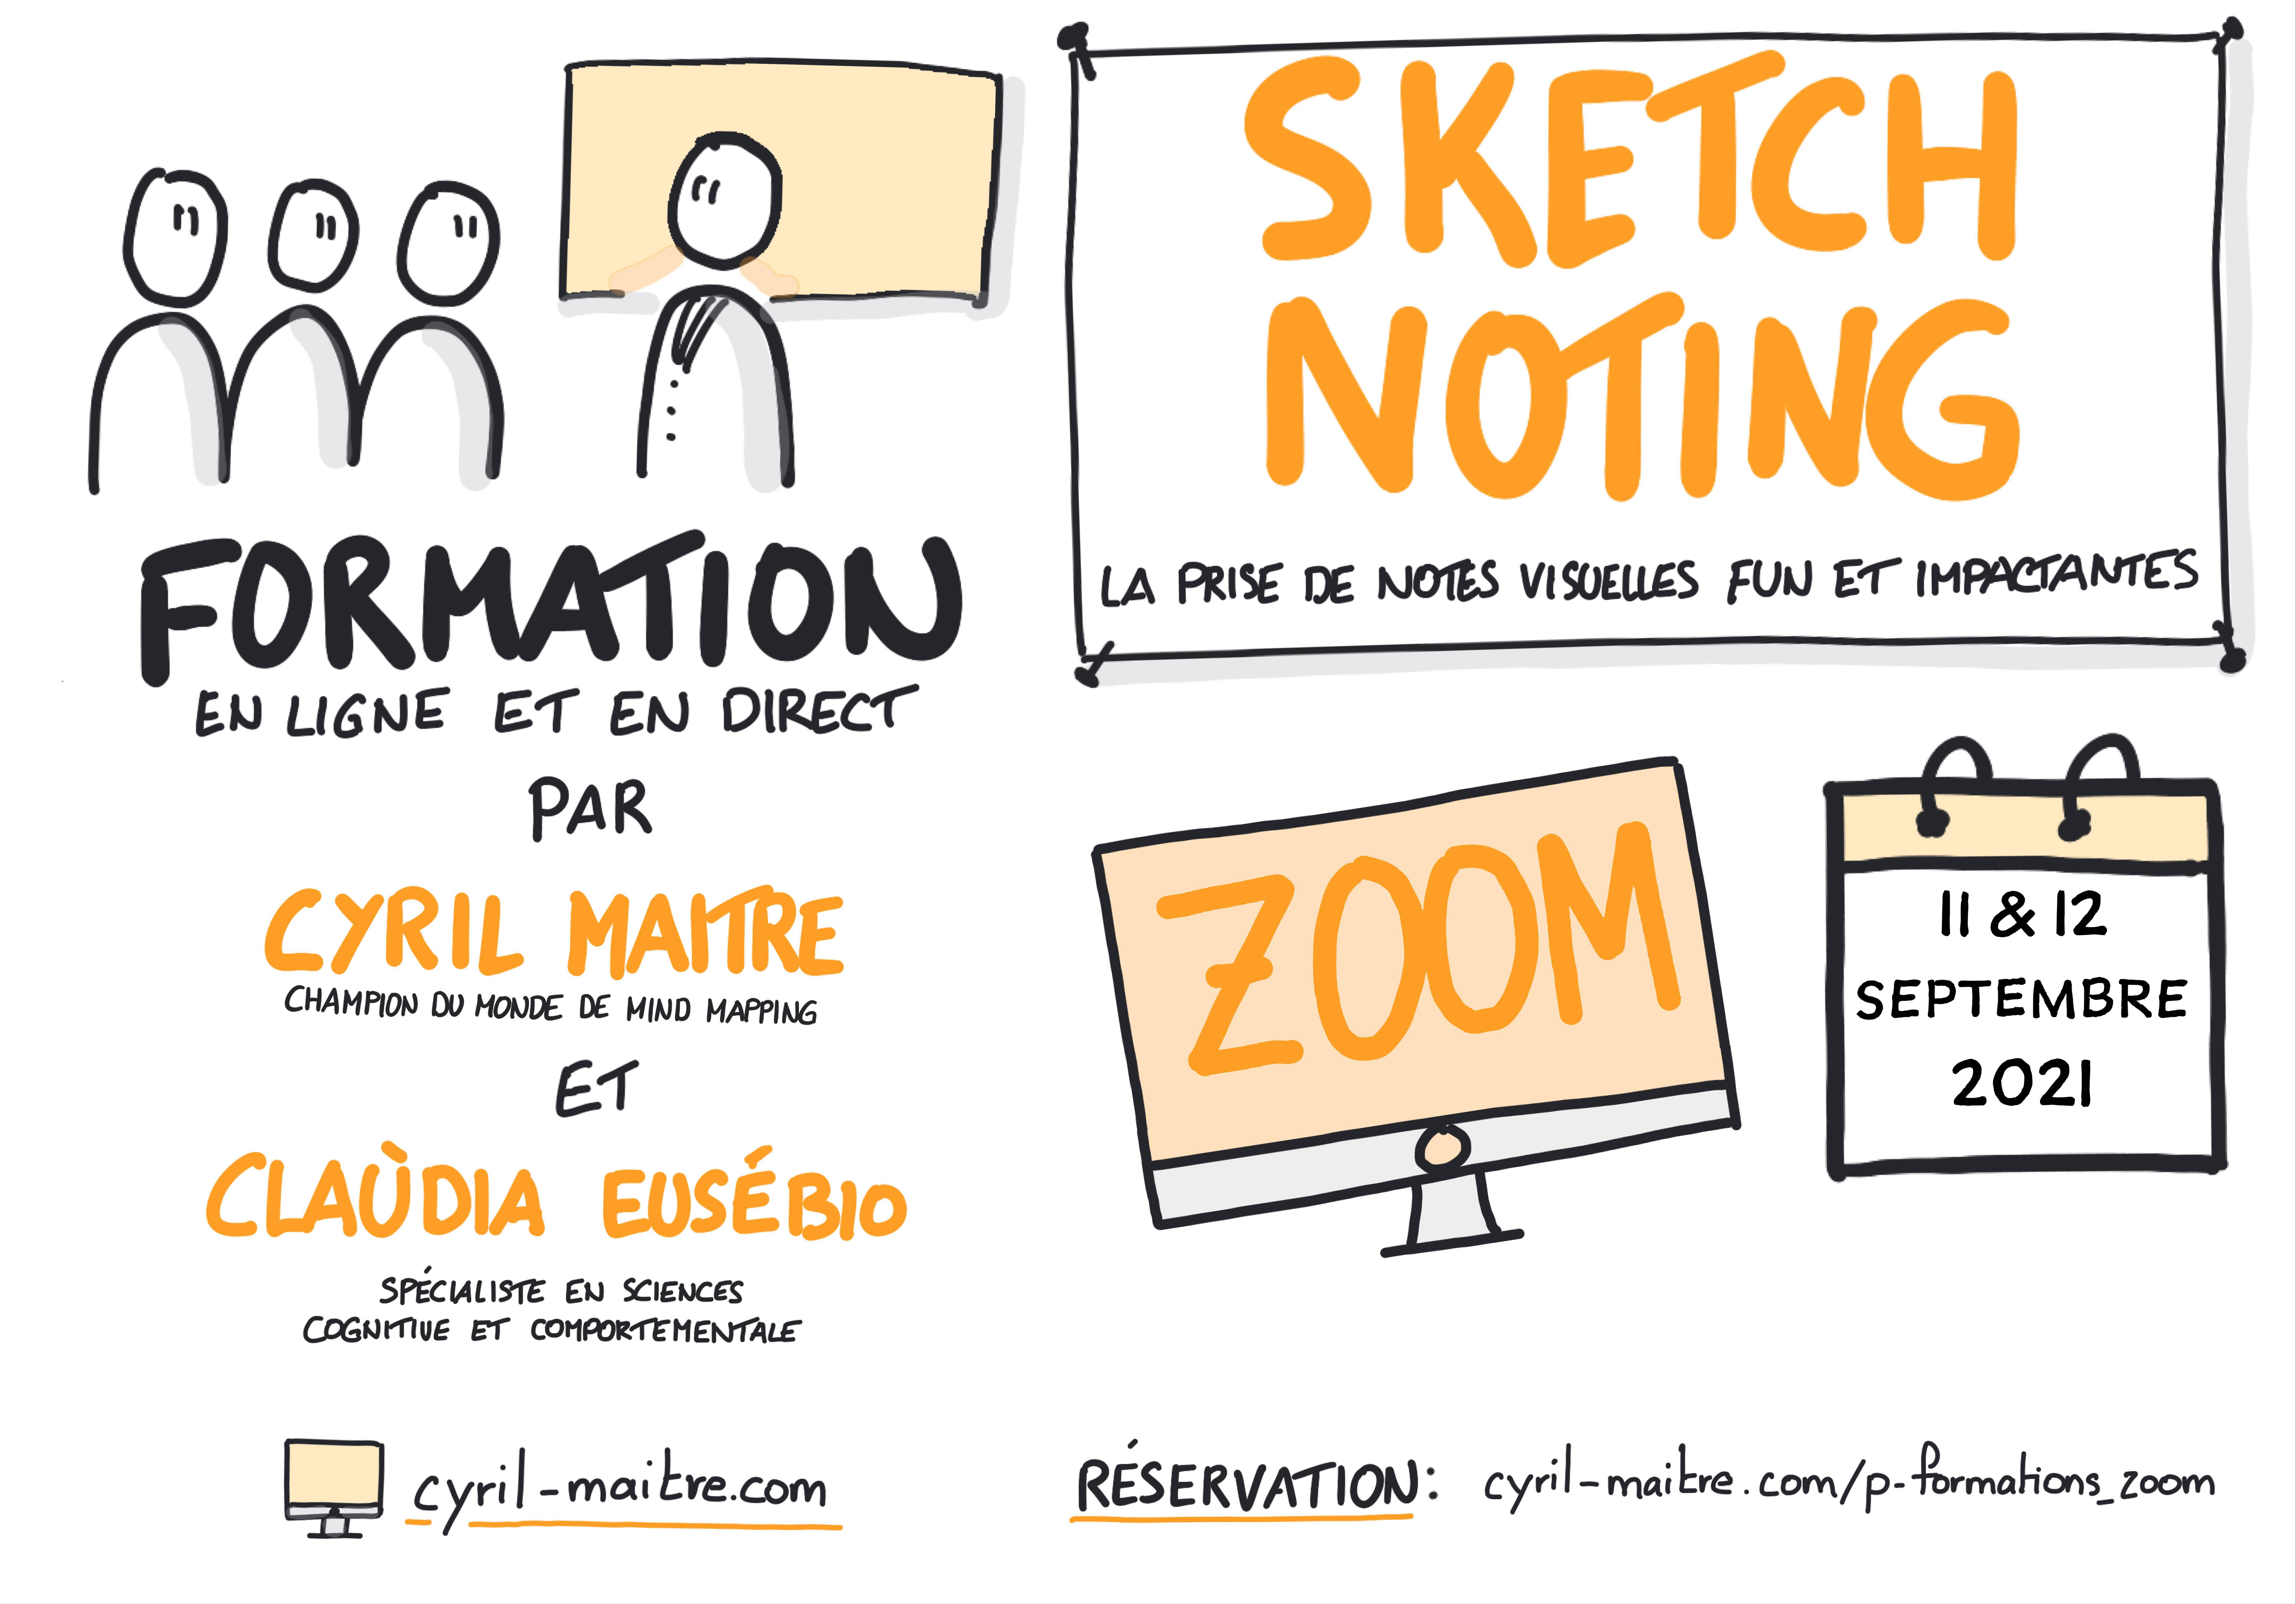 cyril maitre claudia eusebio formation sketchnoting